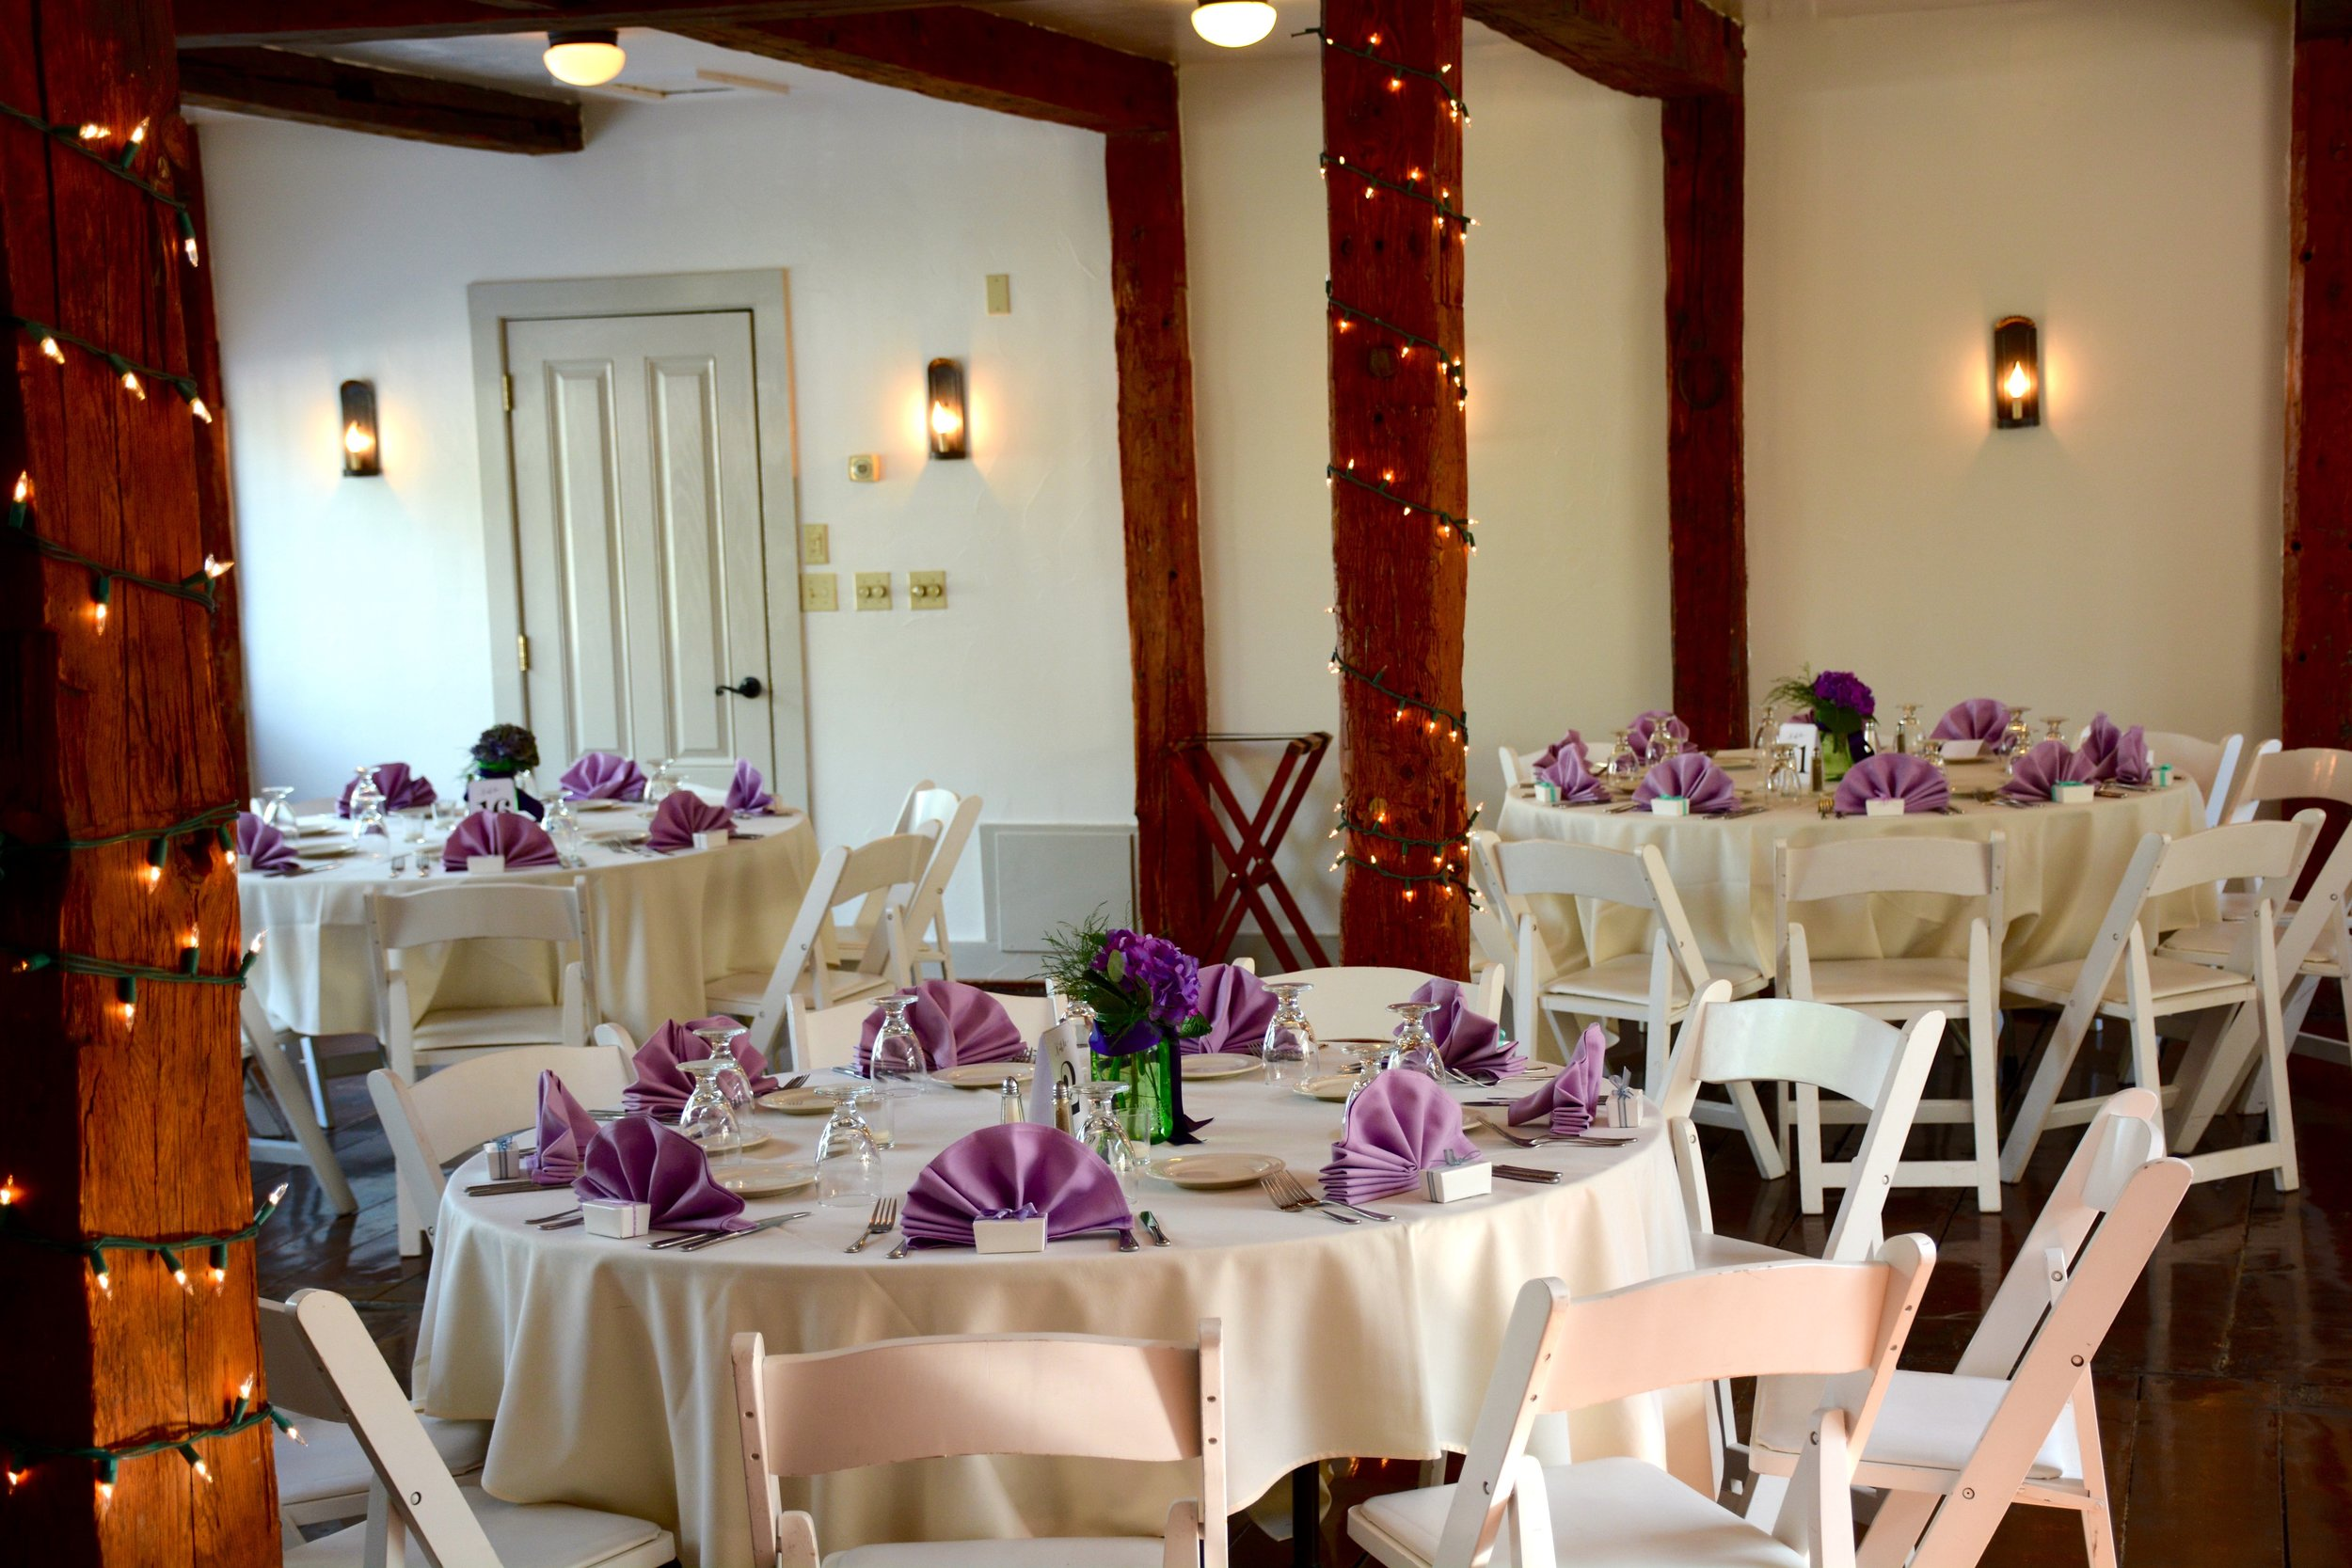 Banquet Hall a the Dowds' Country Inn - Weddings & Special Events - Lyme, NH